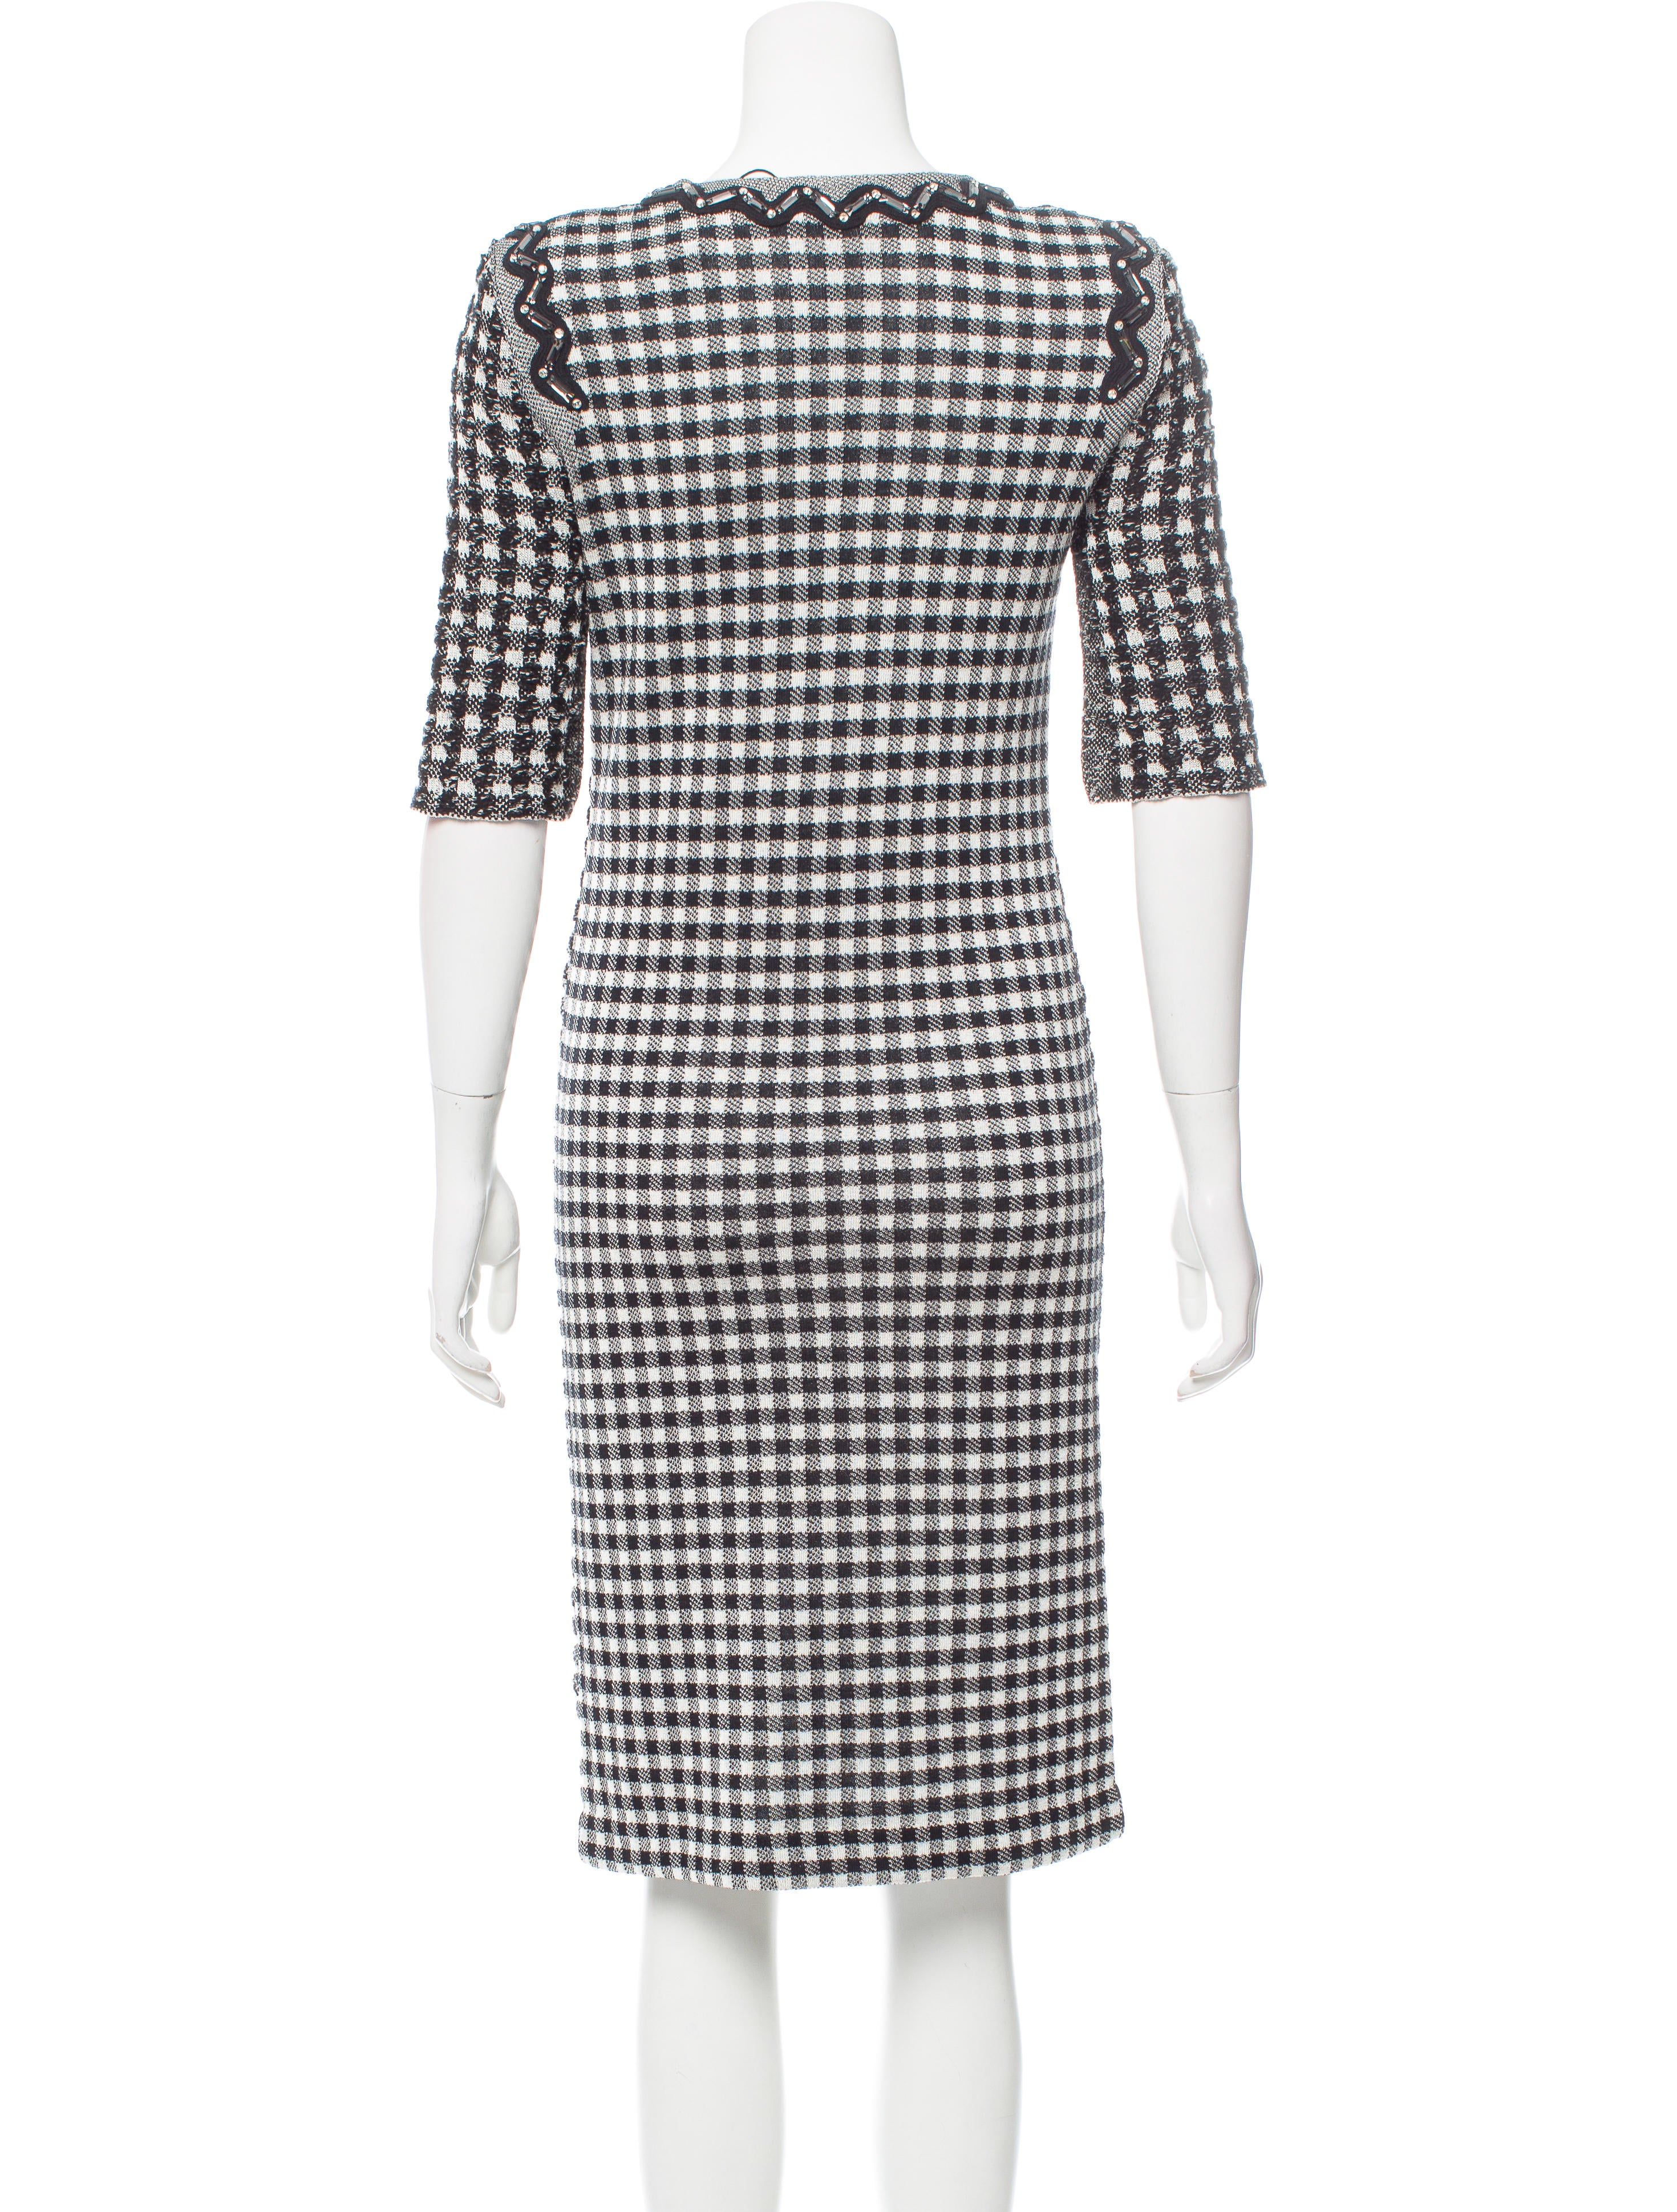 sonia rykiel plaid midi dress w tags clothing son25287 the realreal. Black Bedroom Furniture Sets. Home Design Ideas